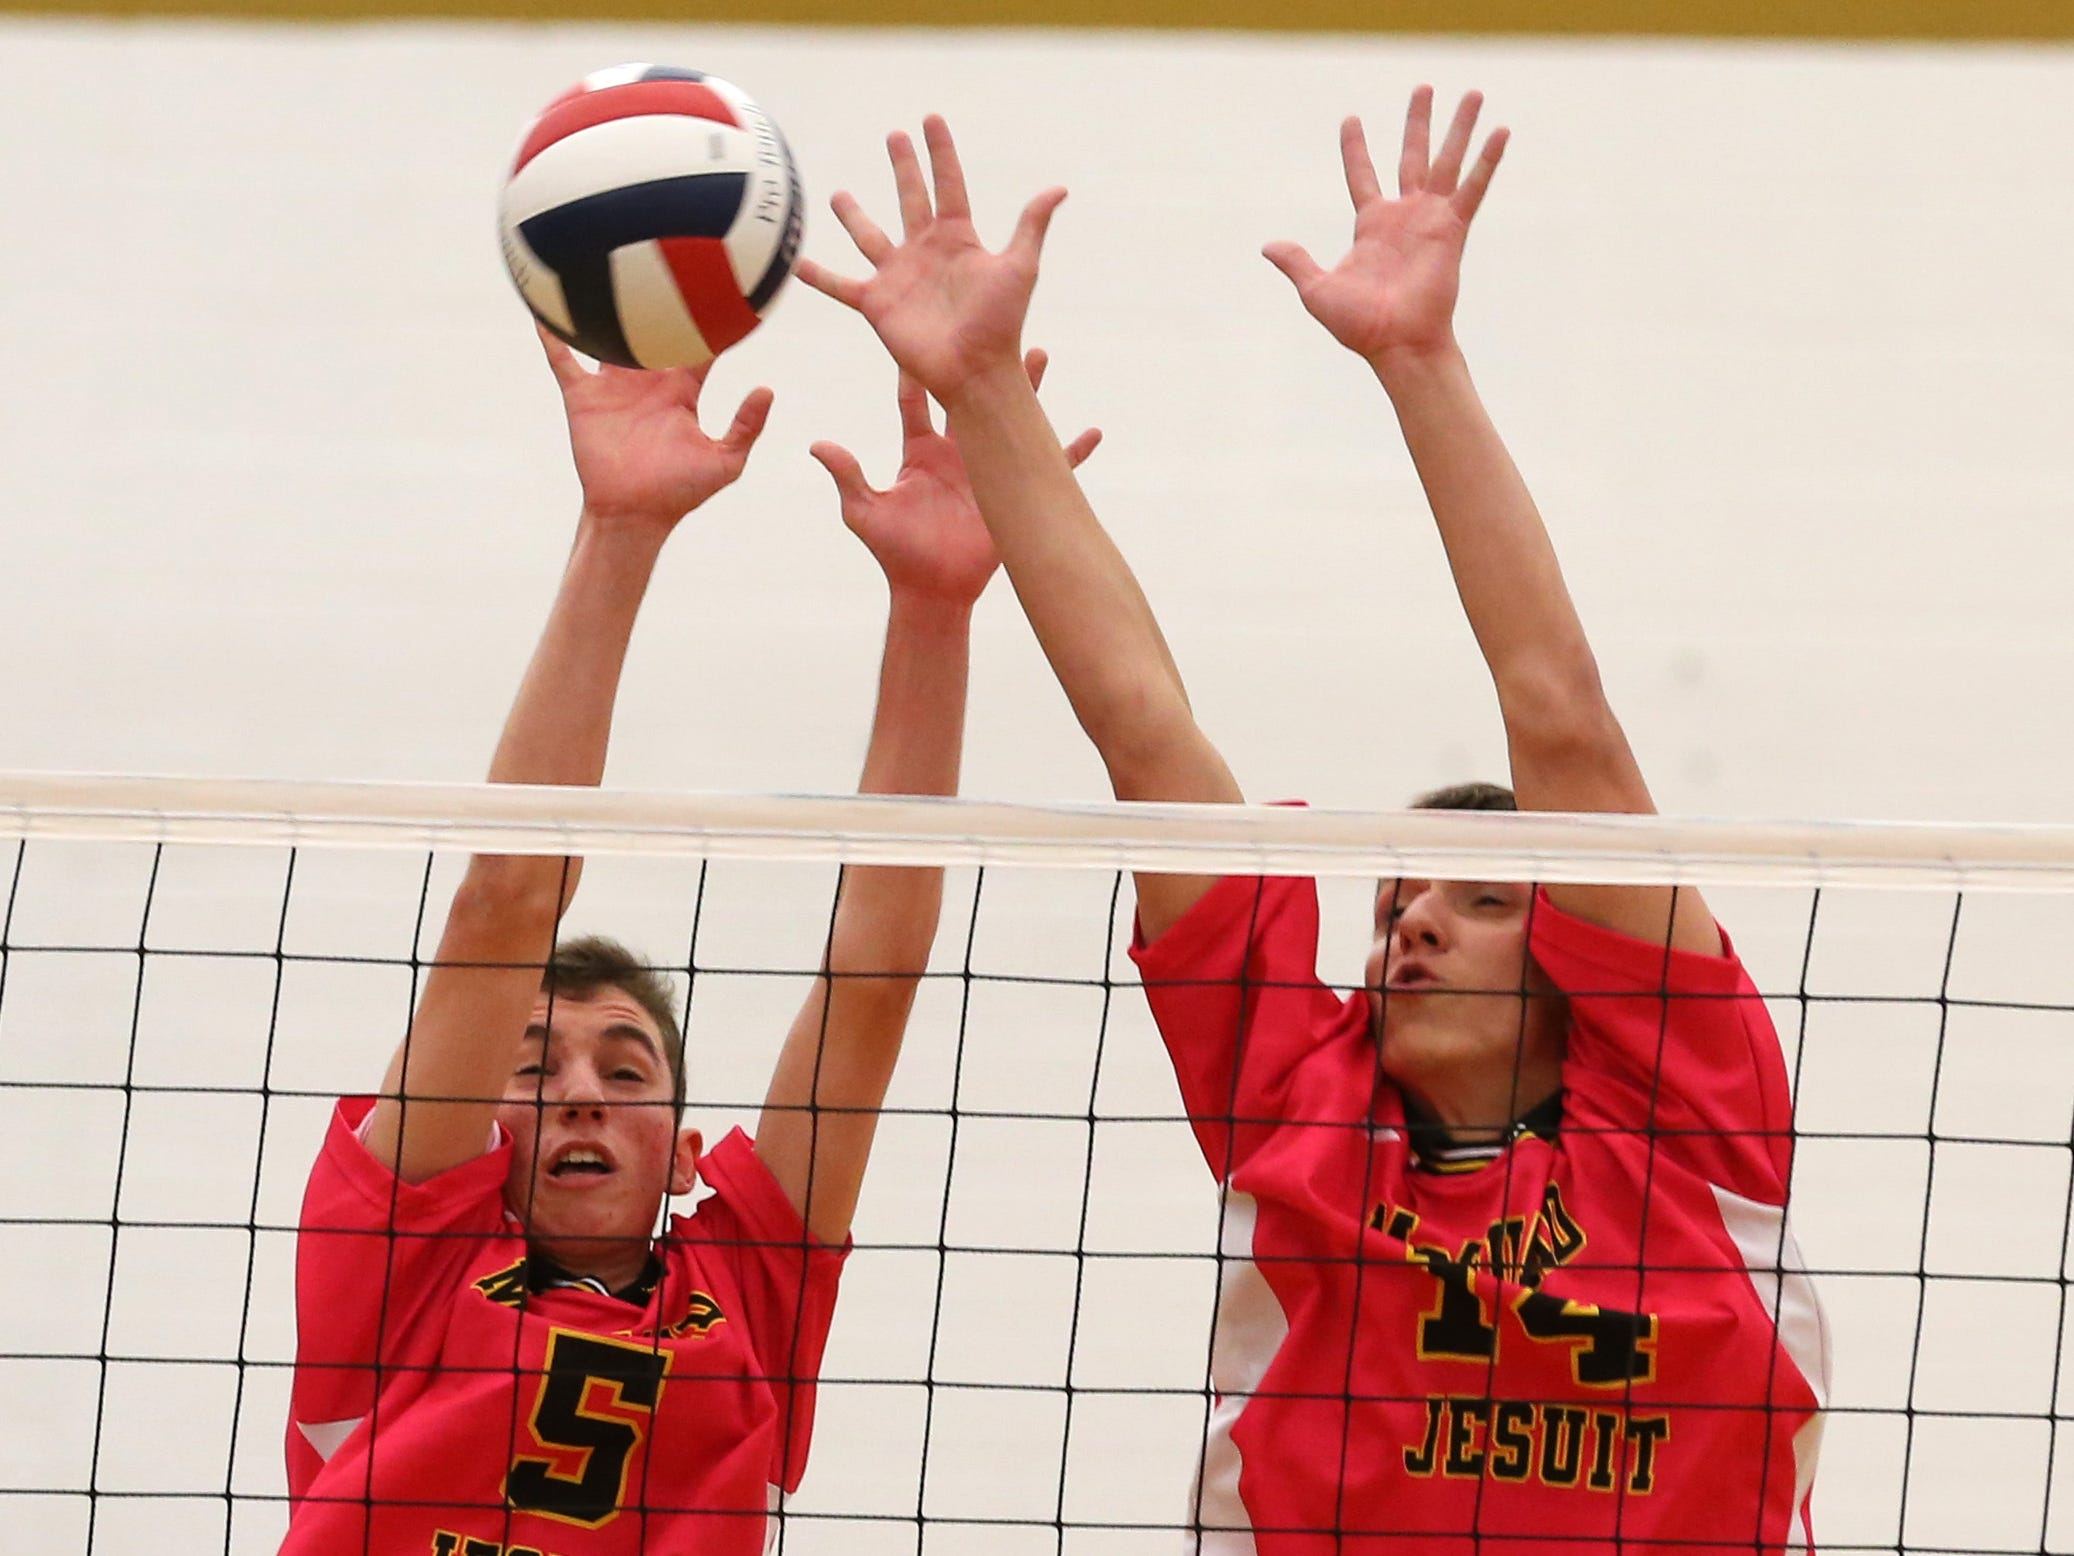 McQuaid's Christopher Mahar, left, and Christian Pawelek form a wall and block a spike by Penfield's Jack Bittker during the 2015 Section V Class A championship match at Victor.